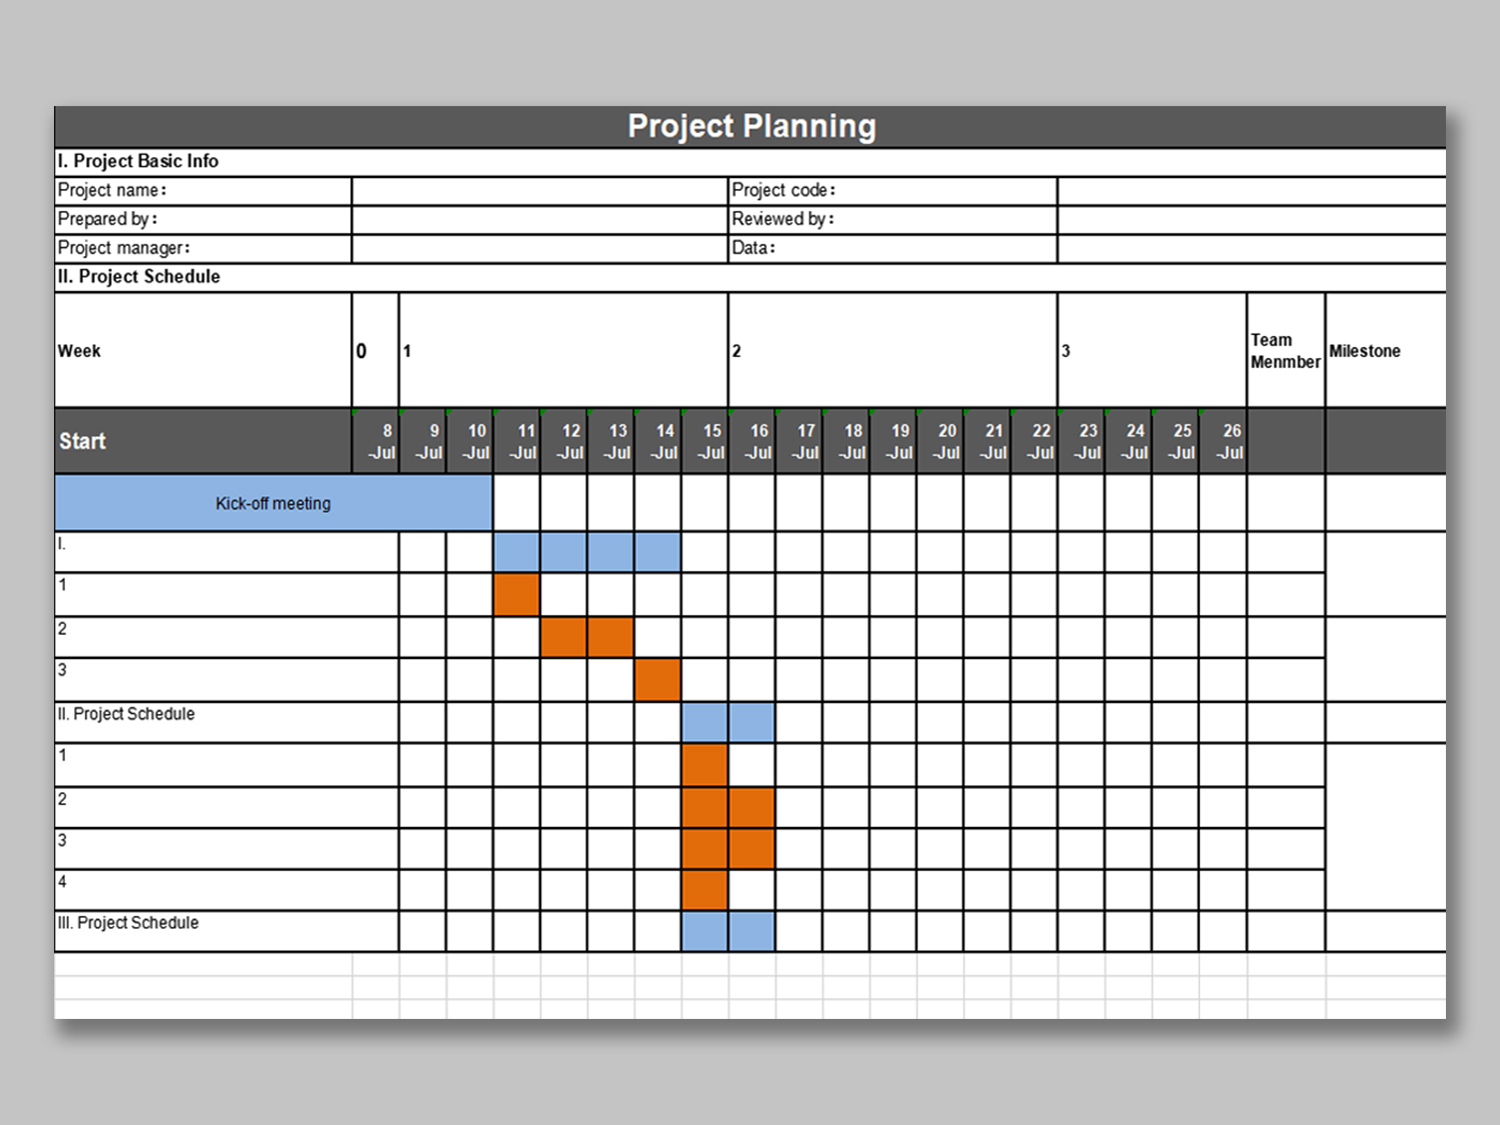 Microsoft Excel Project Planner Template from d4z1onkegyrs5.cloudfront.net